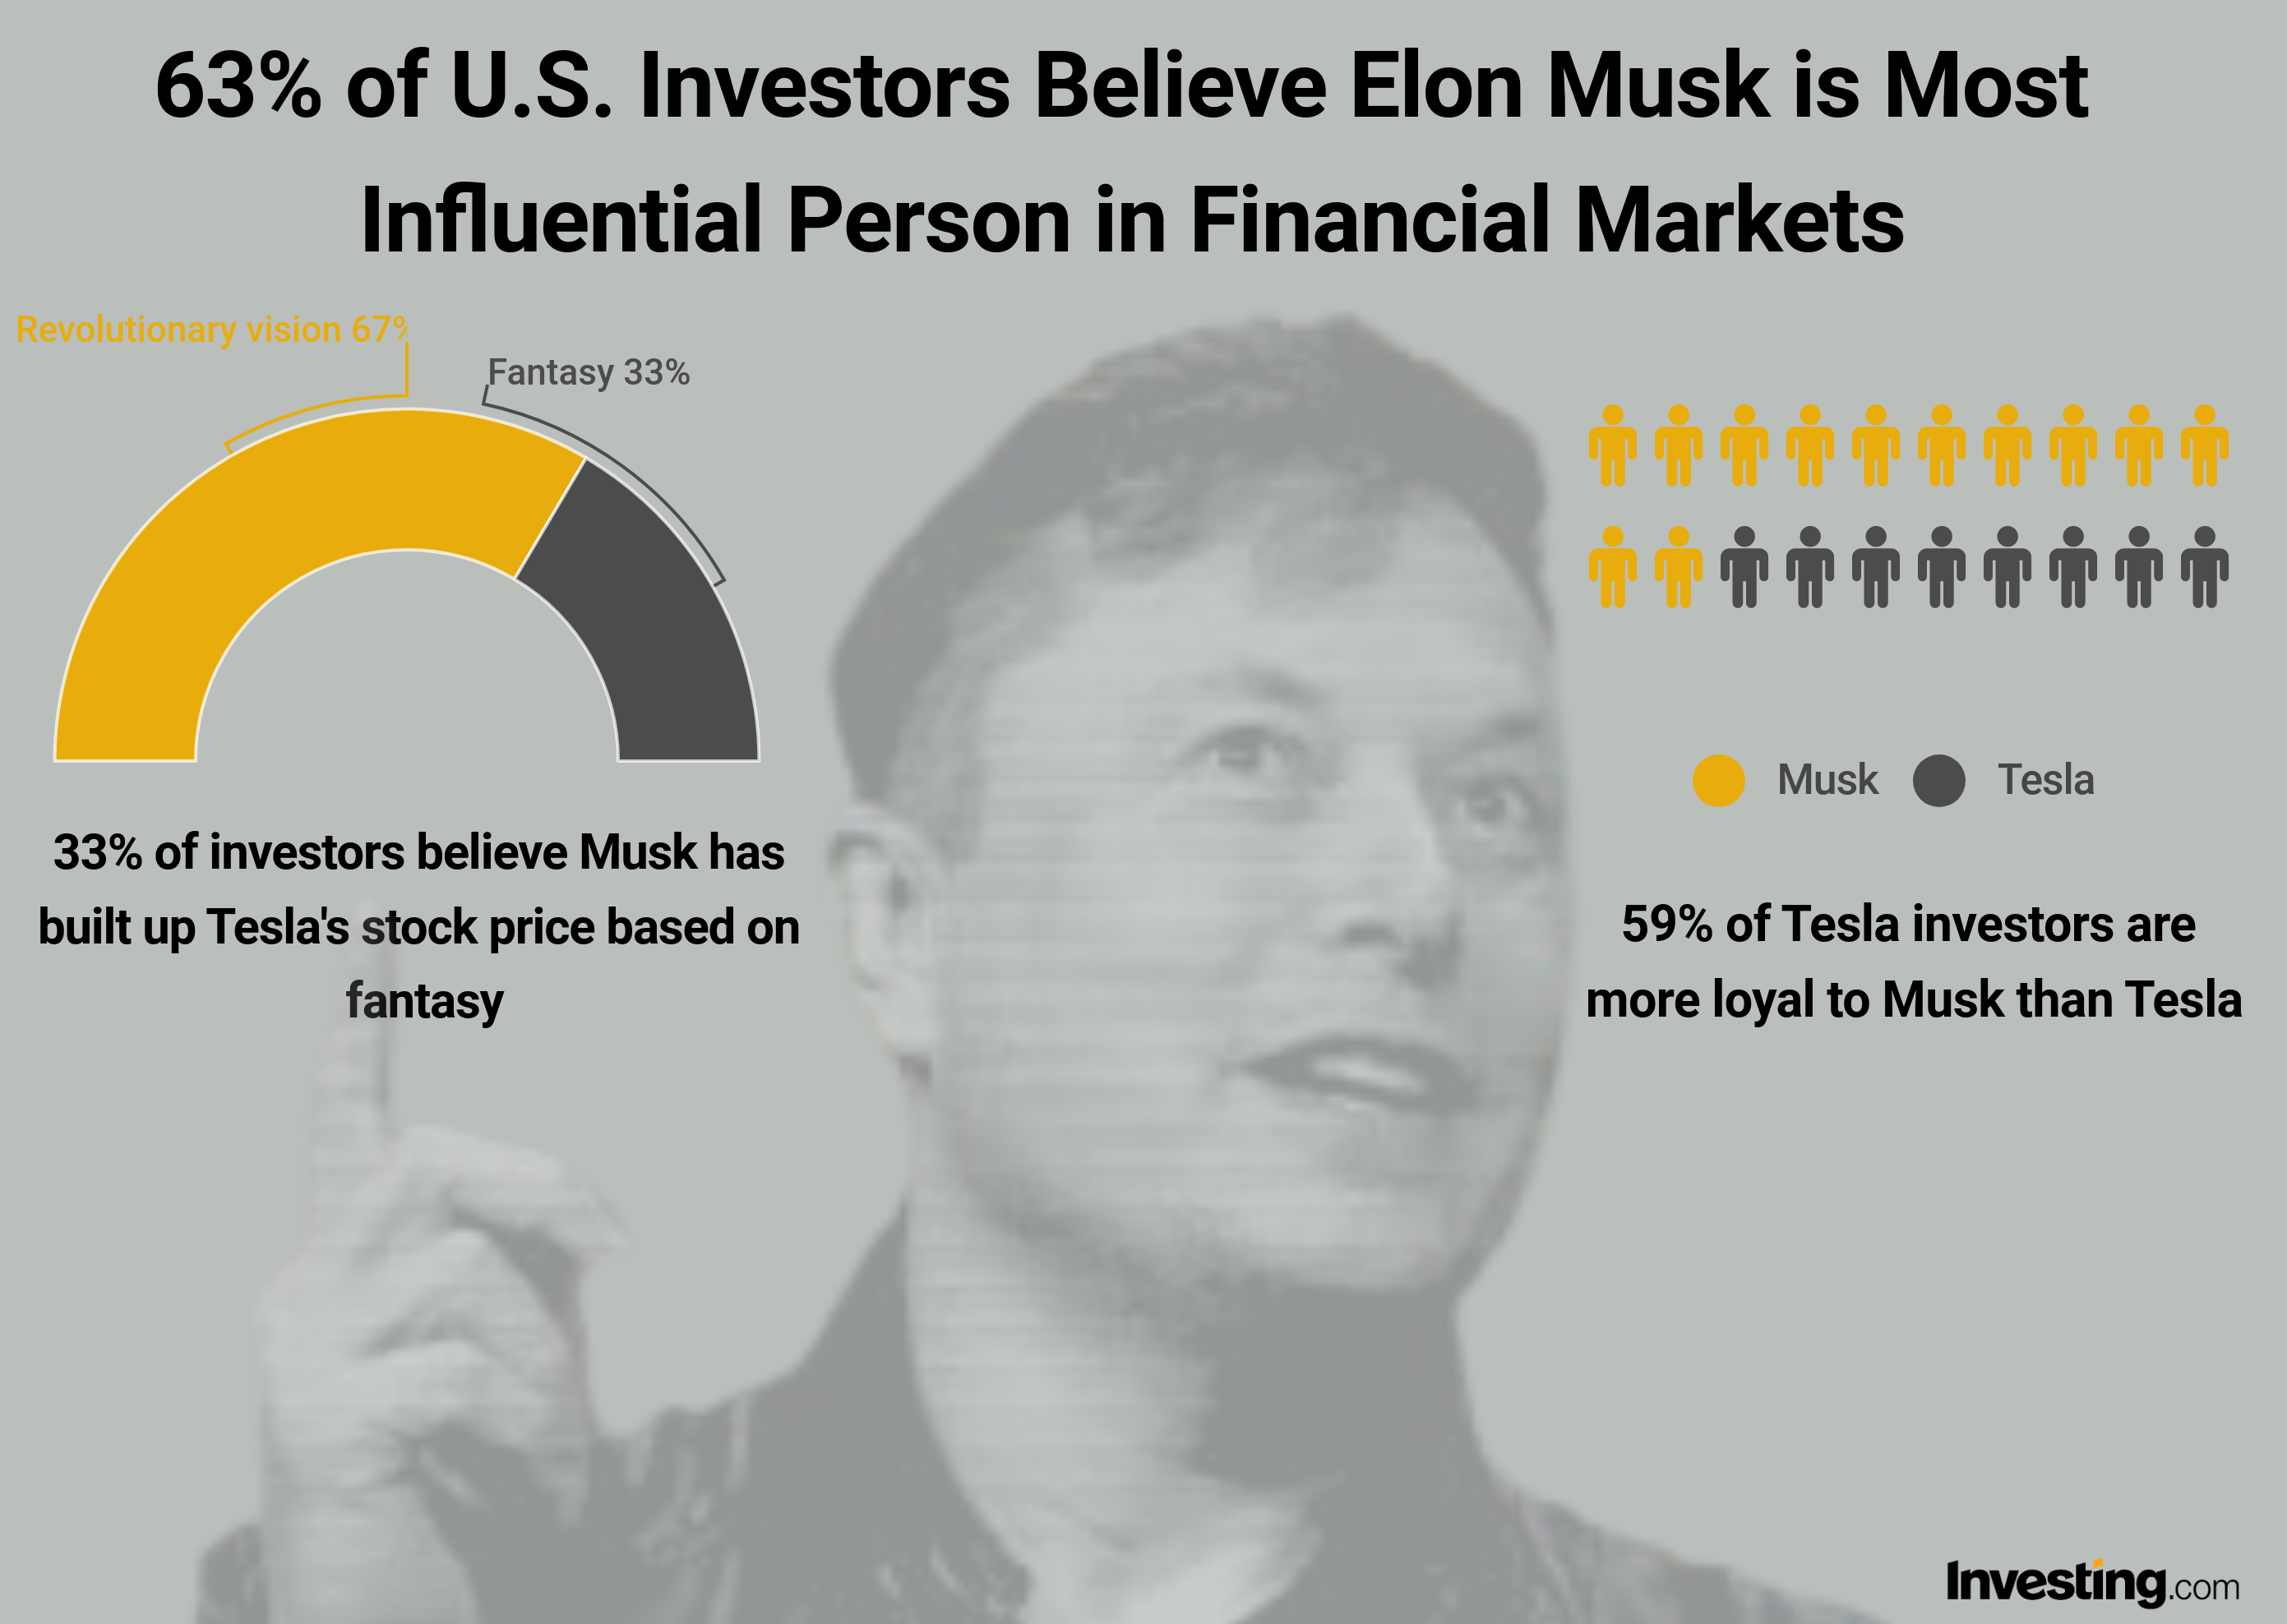 Musk most influential person in financial markets